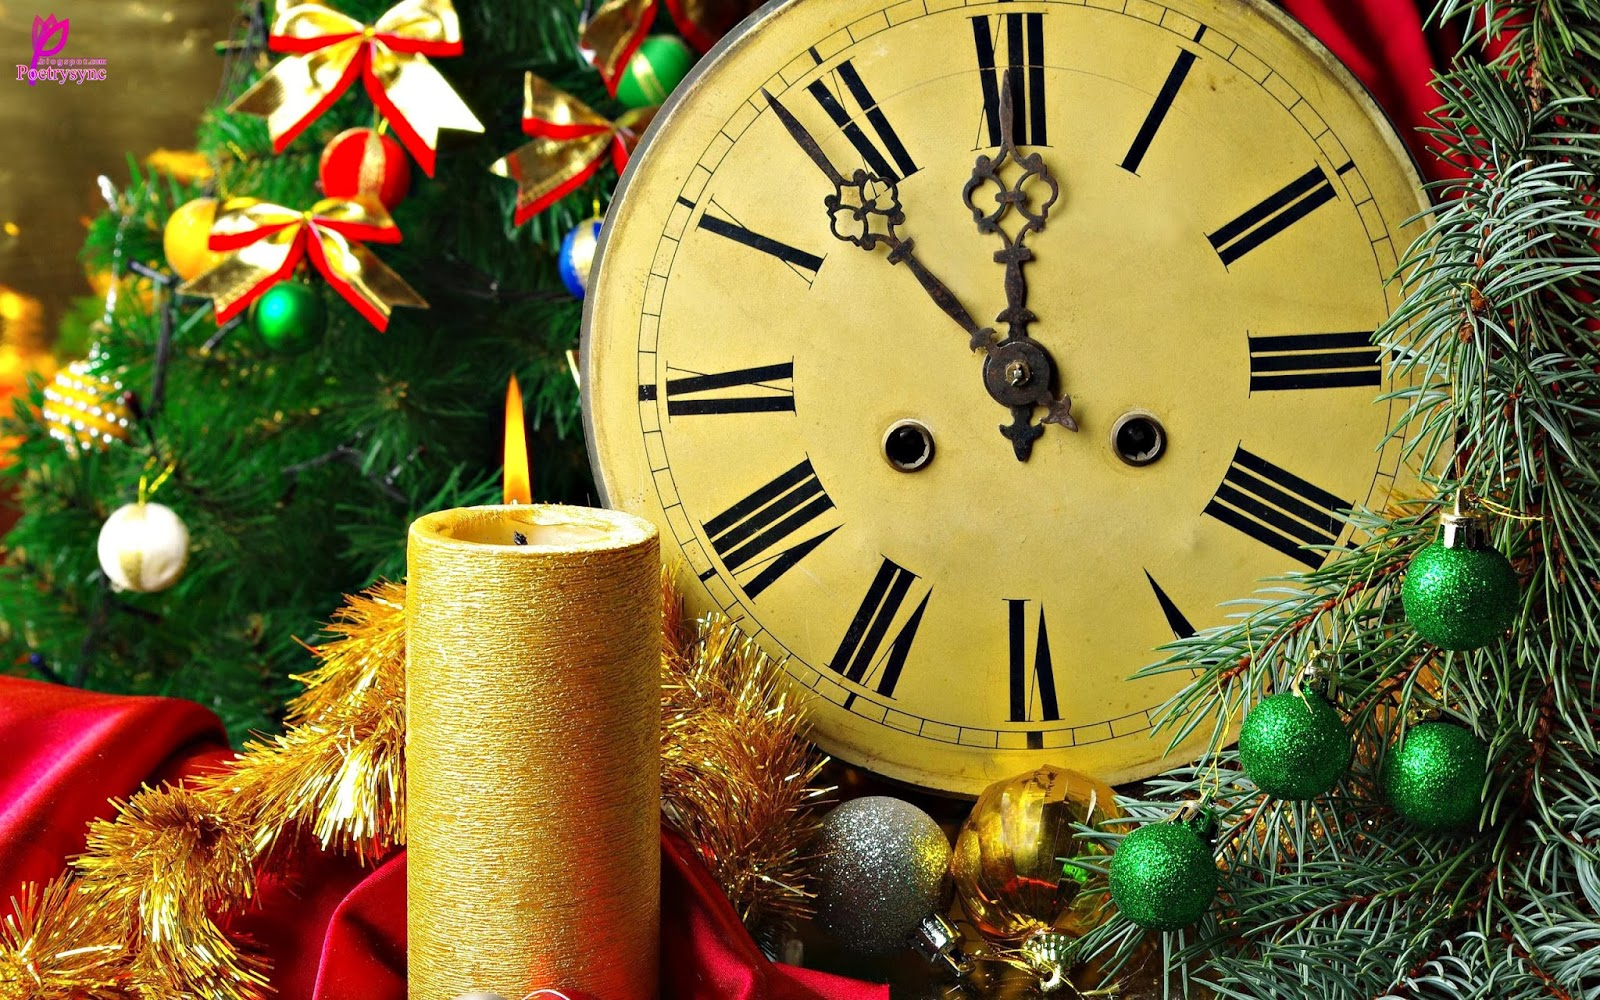 Merry-Christmas-Wide-Clock-Wallpaper-2560x1600